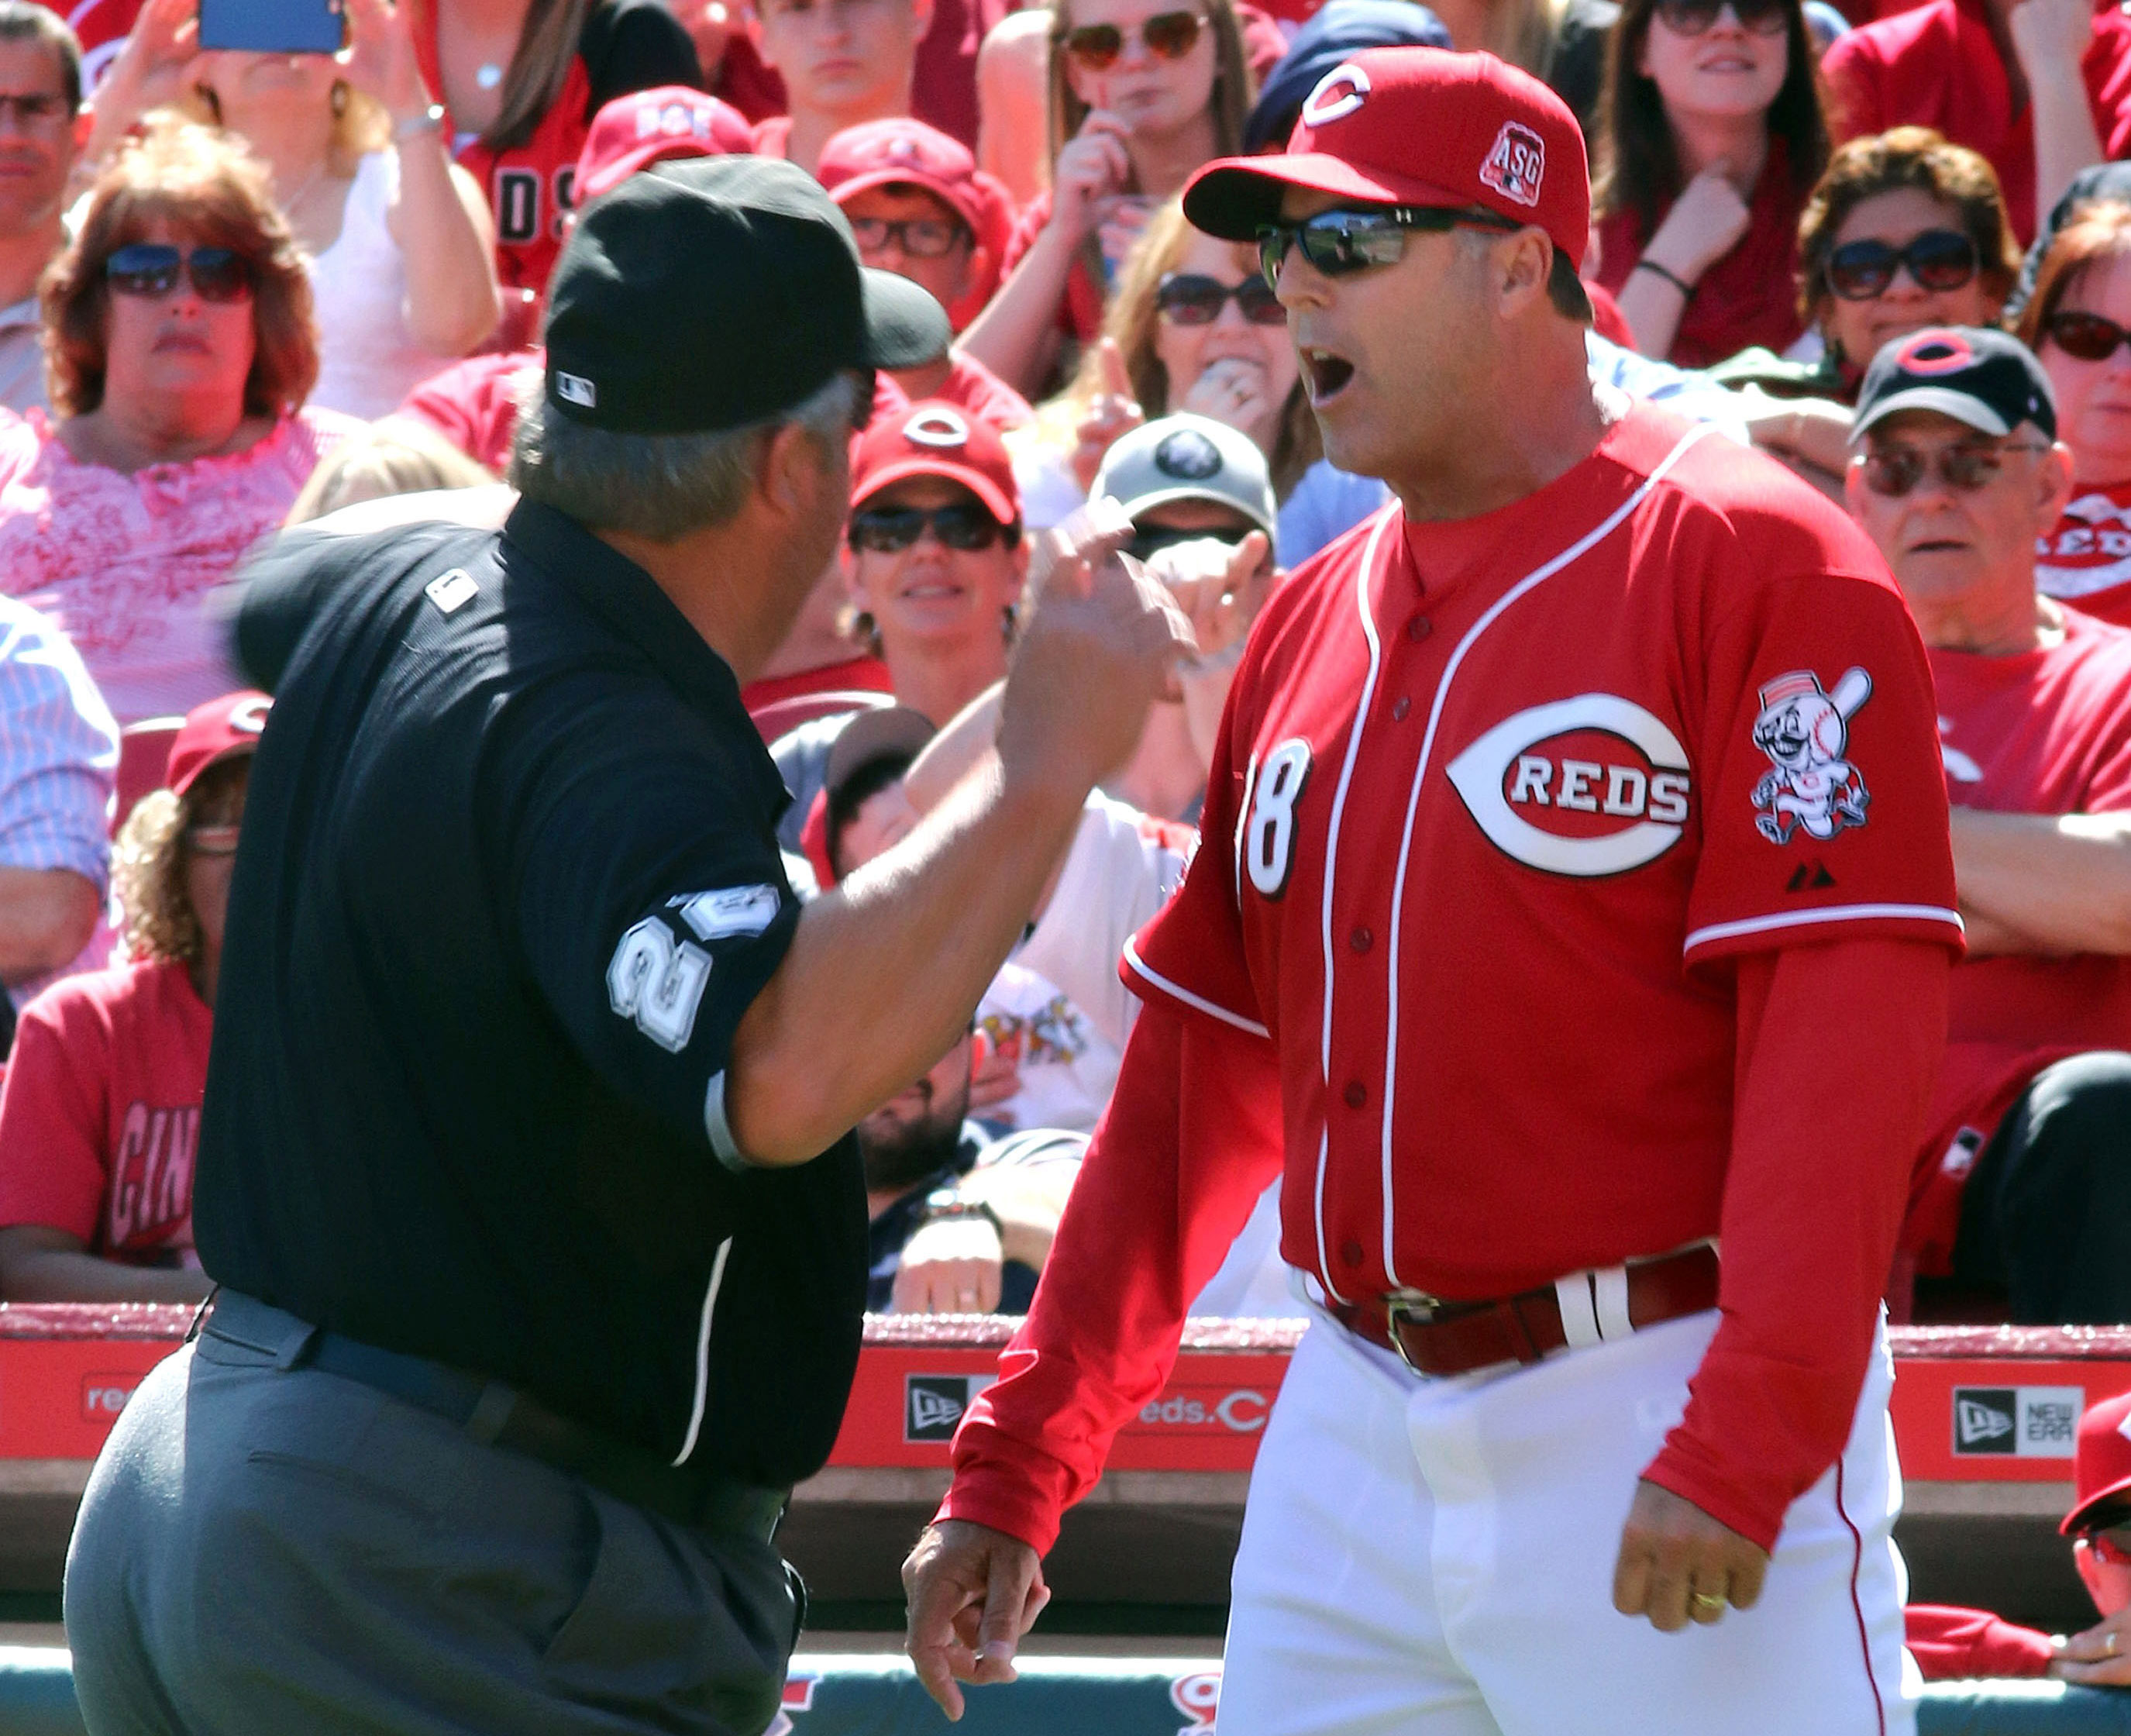 Column: On Bryan Price and the ever-blurring line in sports media